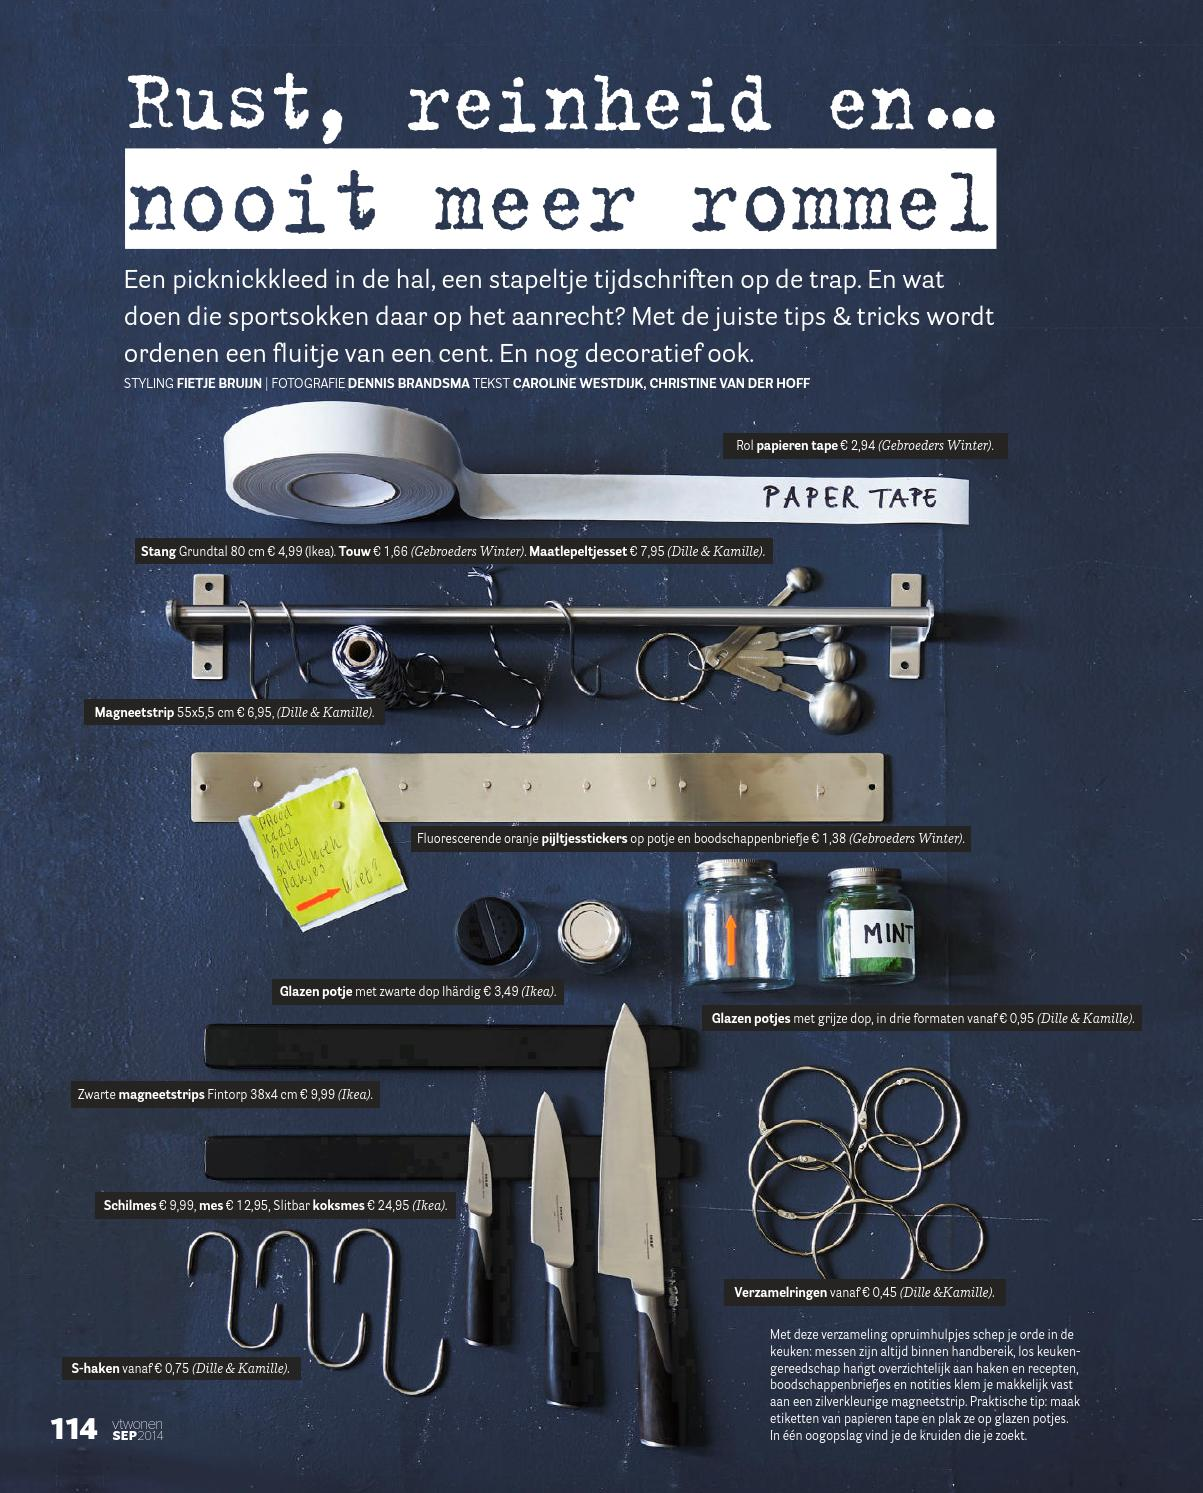 Vtwonen 09 Bladerboekje By Home Deco Sanoma Issuu